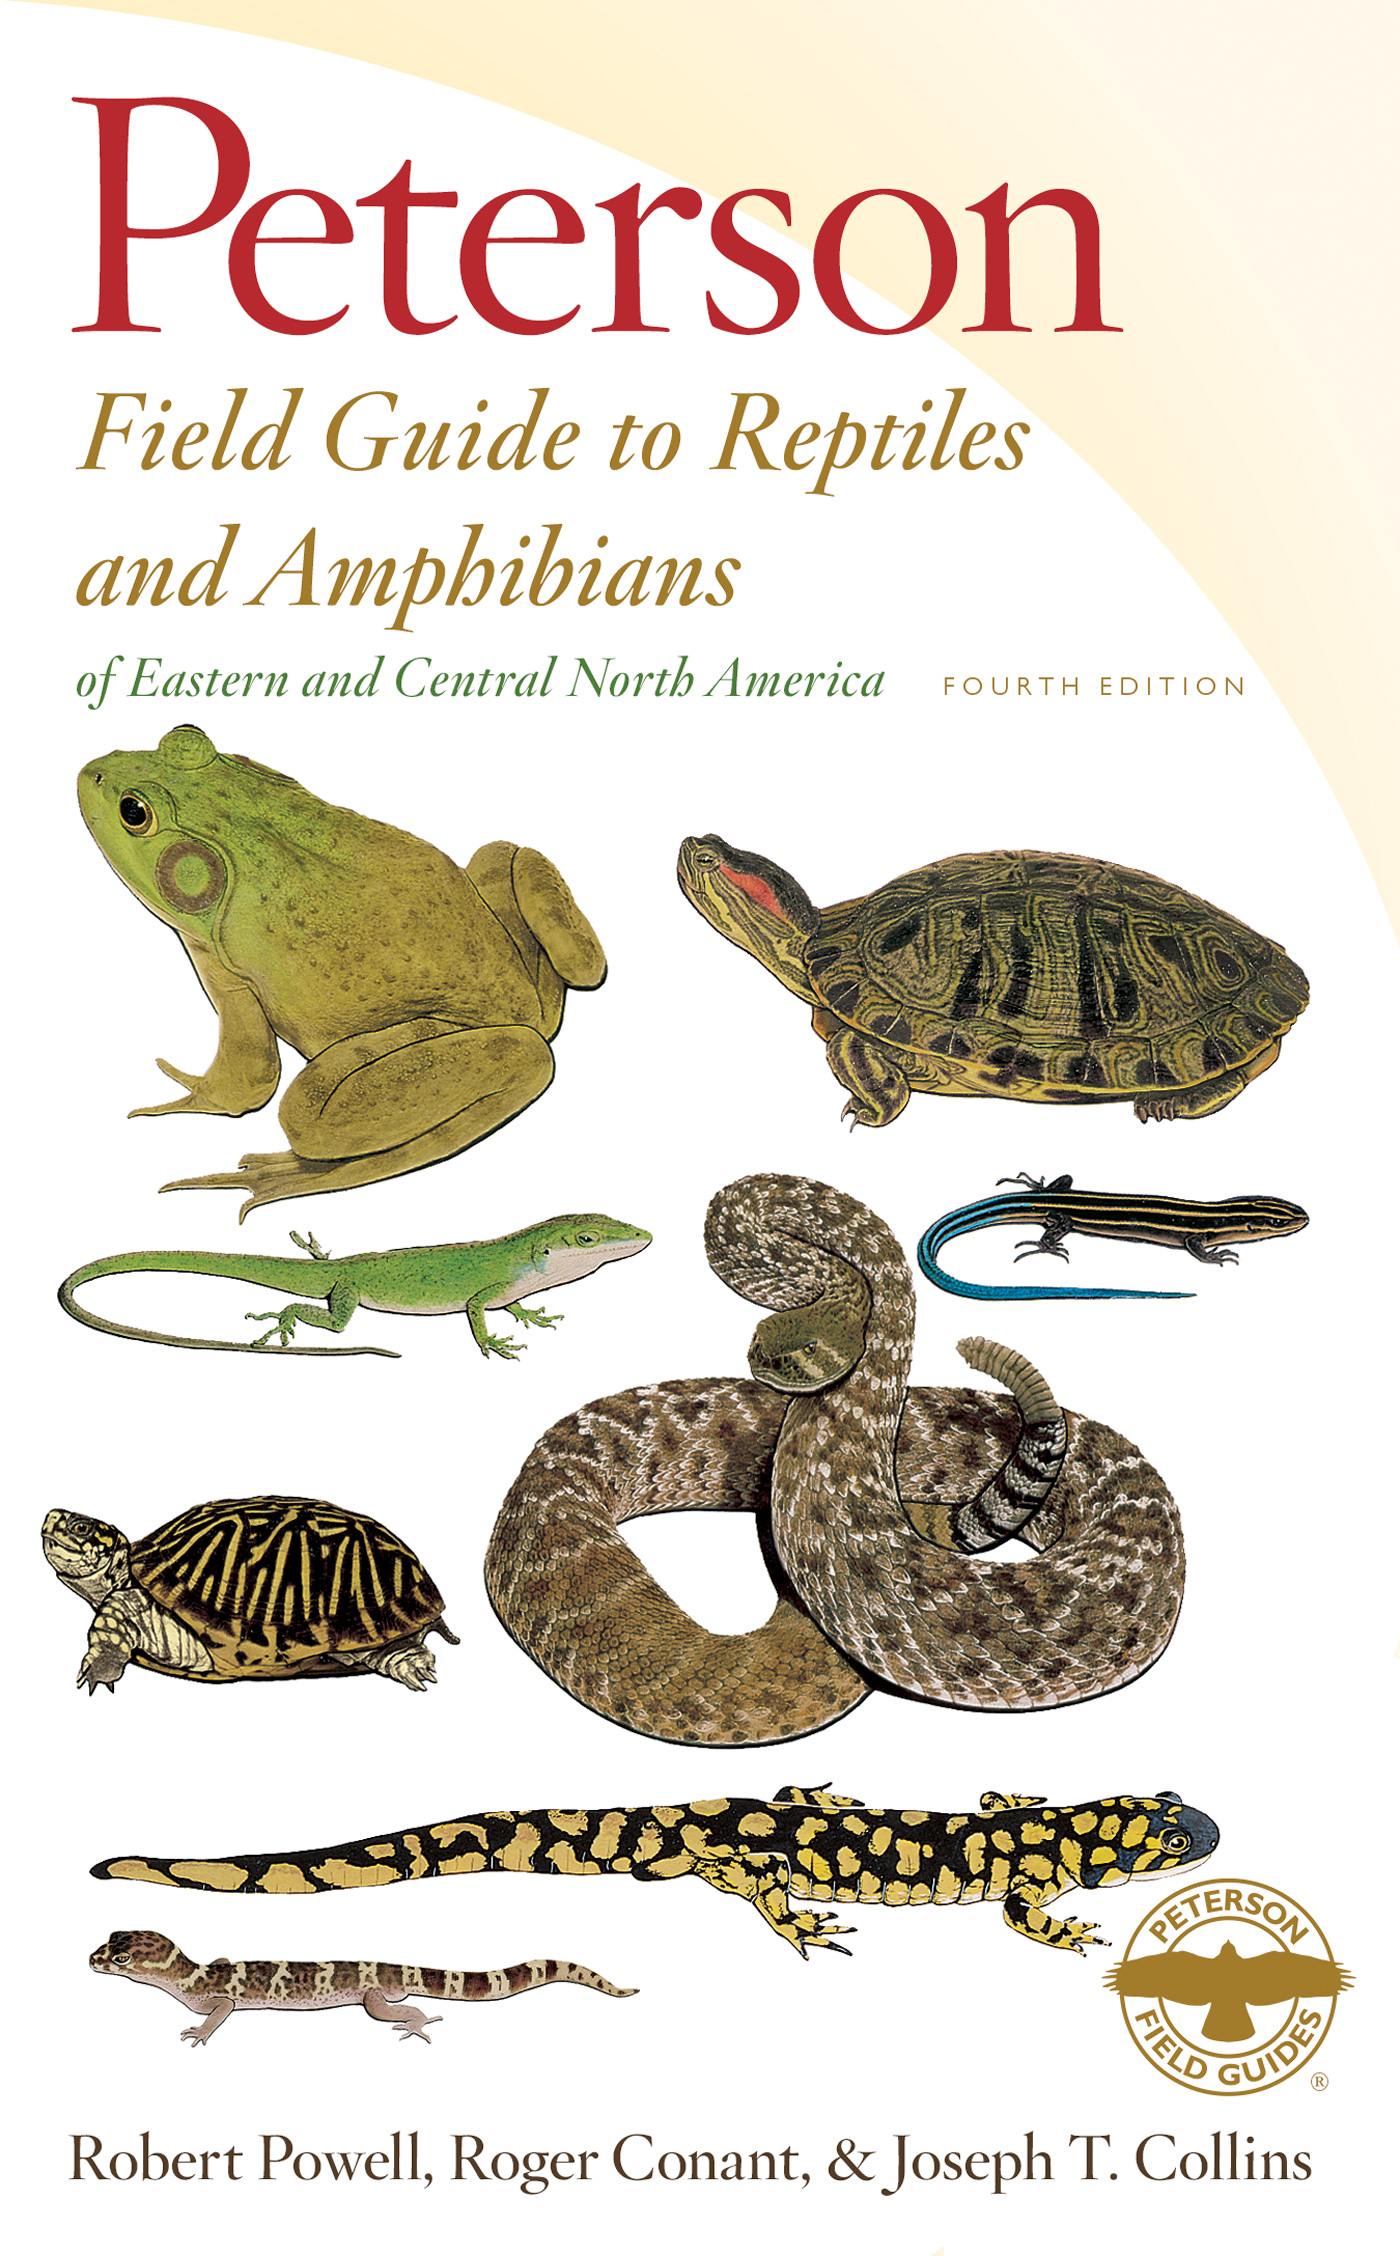 Peterson Field Guide to Reptiles and Amphibians of Eastern and Central North America, Fourth Edition-9780544129979